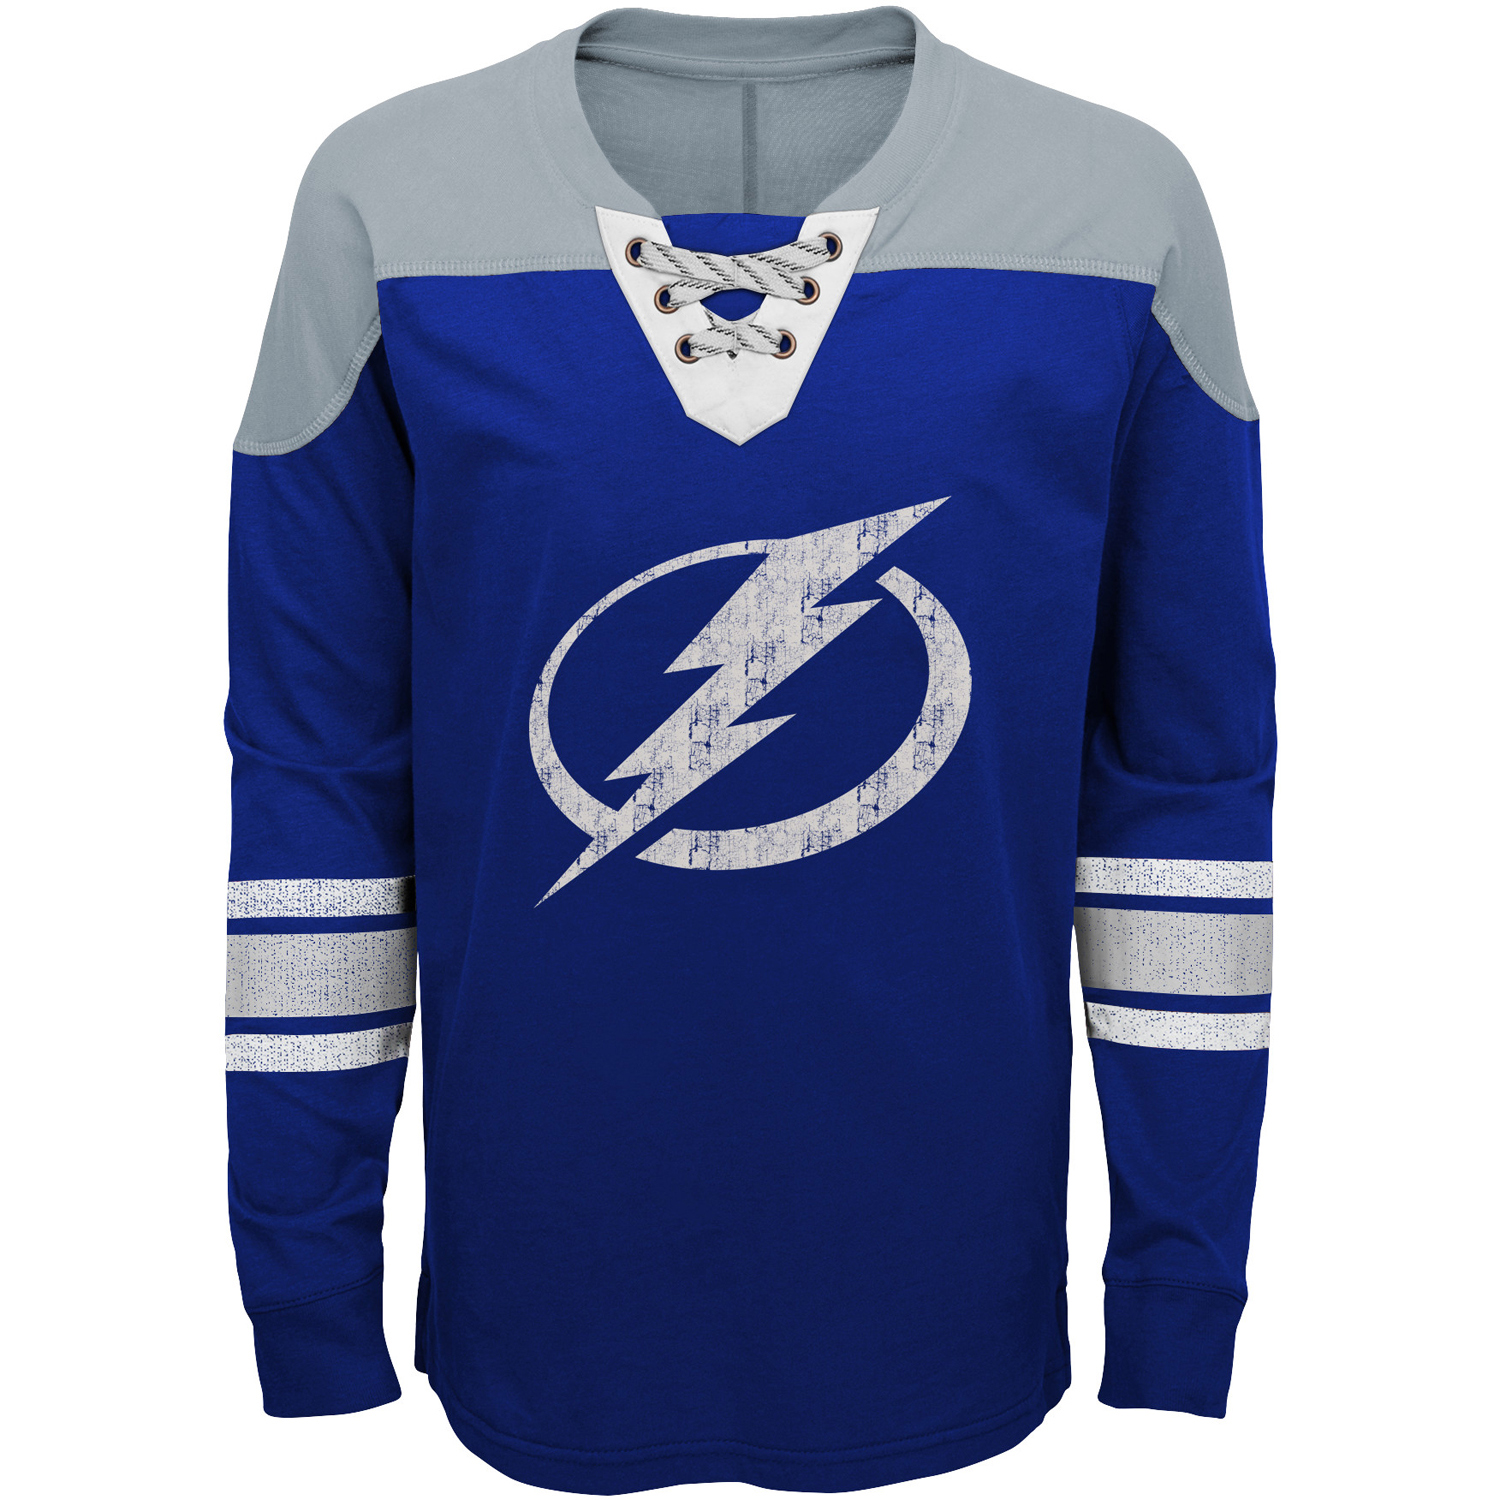 Tampa Bay Lightning Youth Perennial Hockey Lace-Up Crew Sweatshirt Blue Gray by Outerstuff